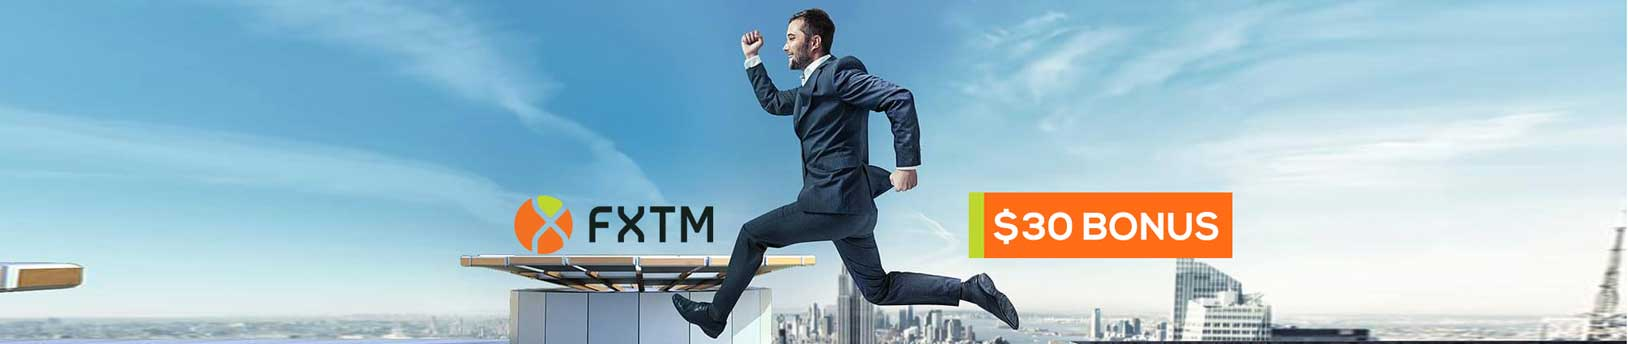 FXTM-BROKER-CHANGE-BONUS